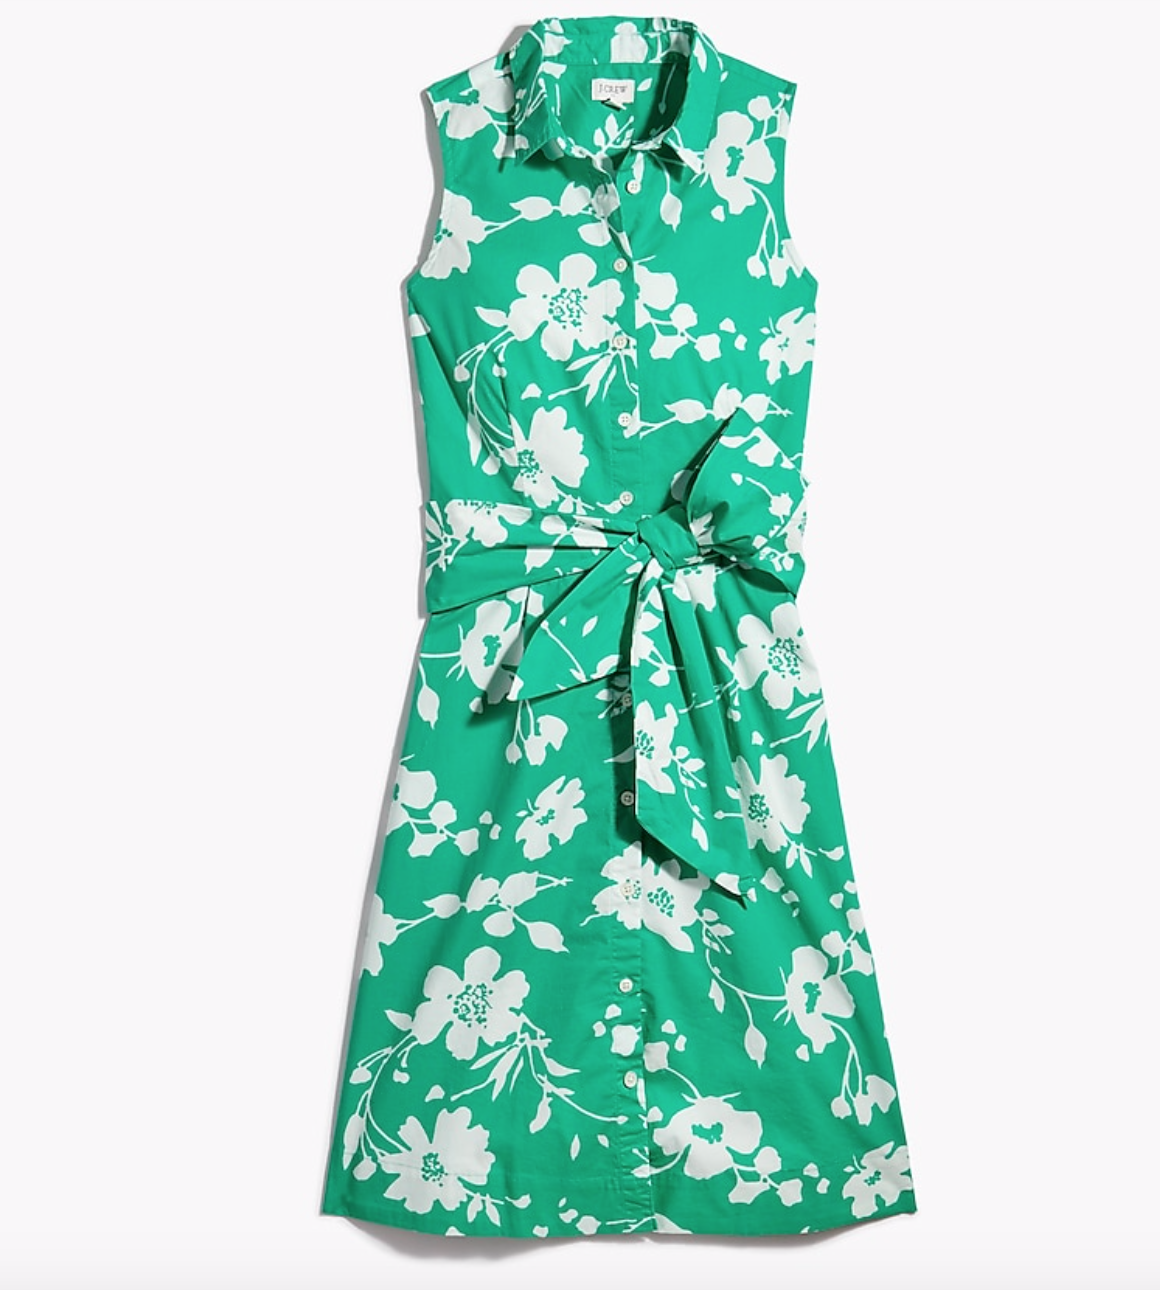 Sleeveless Tie-Waist Shirtdress in Florence Floral Green Ivy